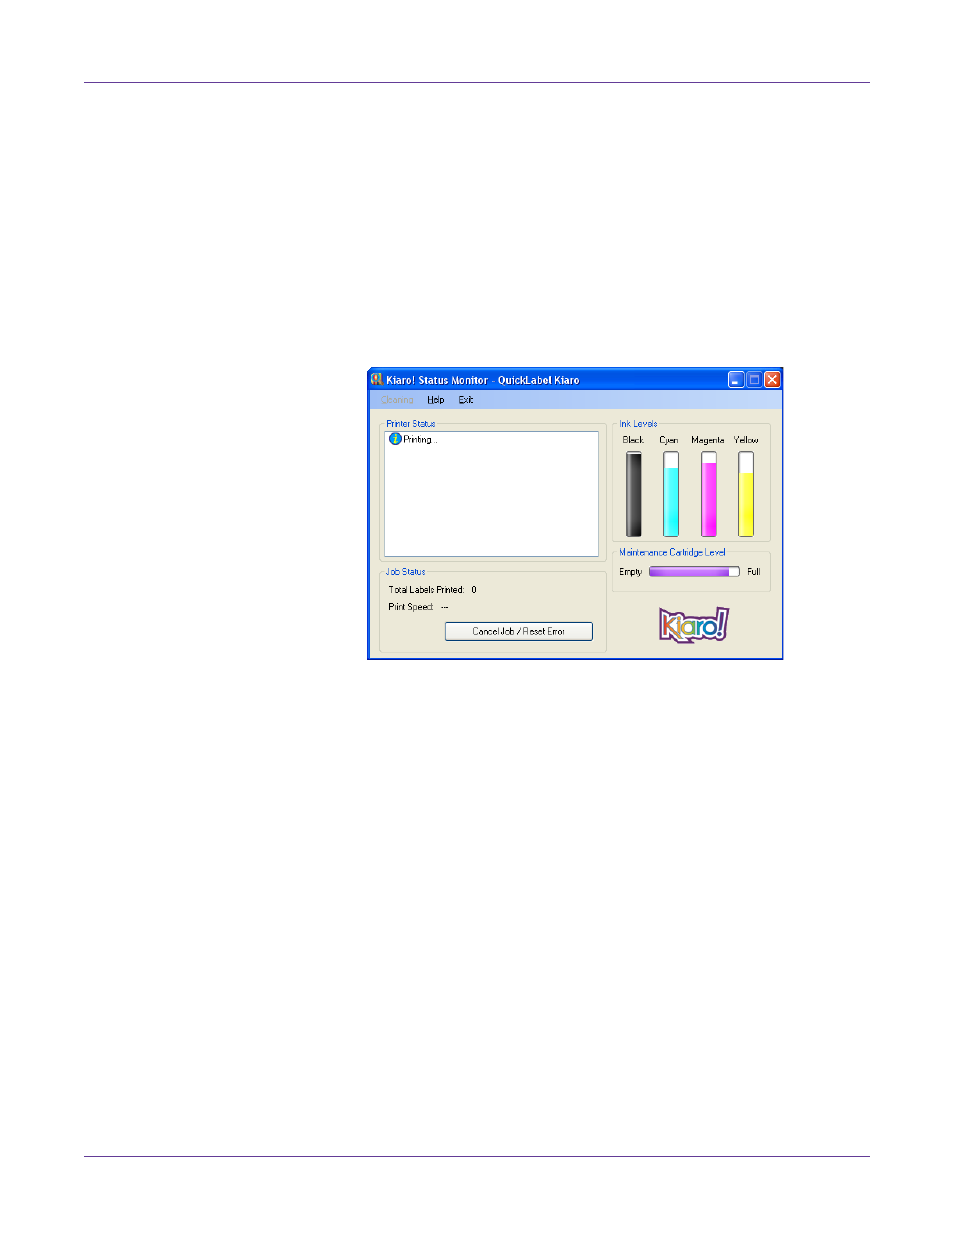 Using the status monitor, Viewing the printer status | QuickLabel